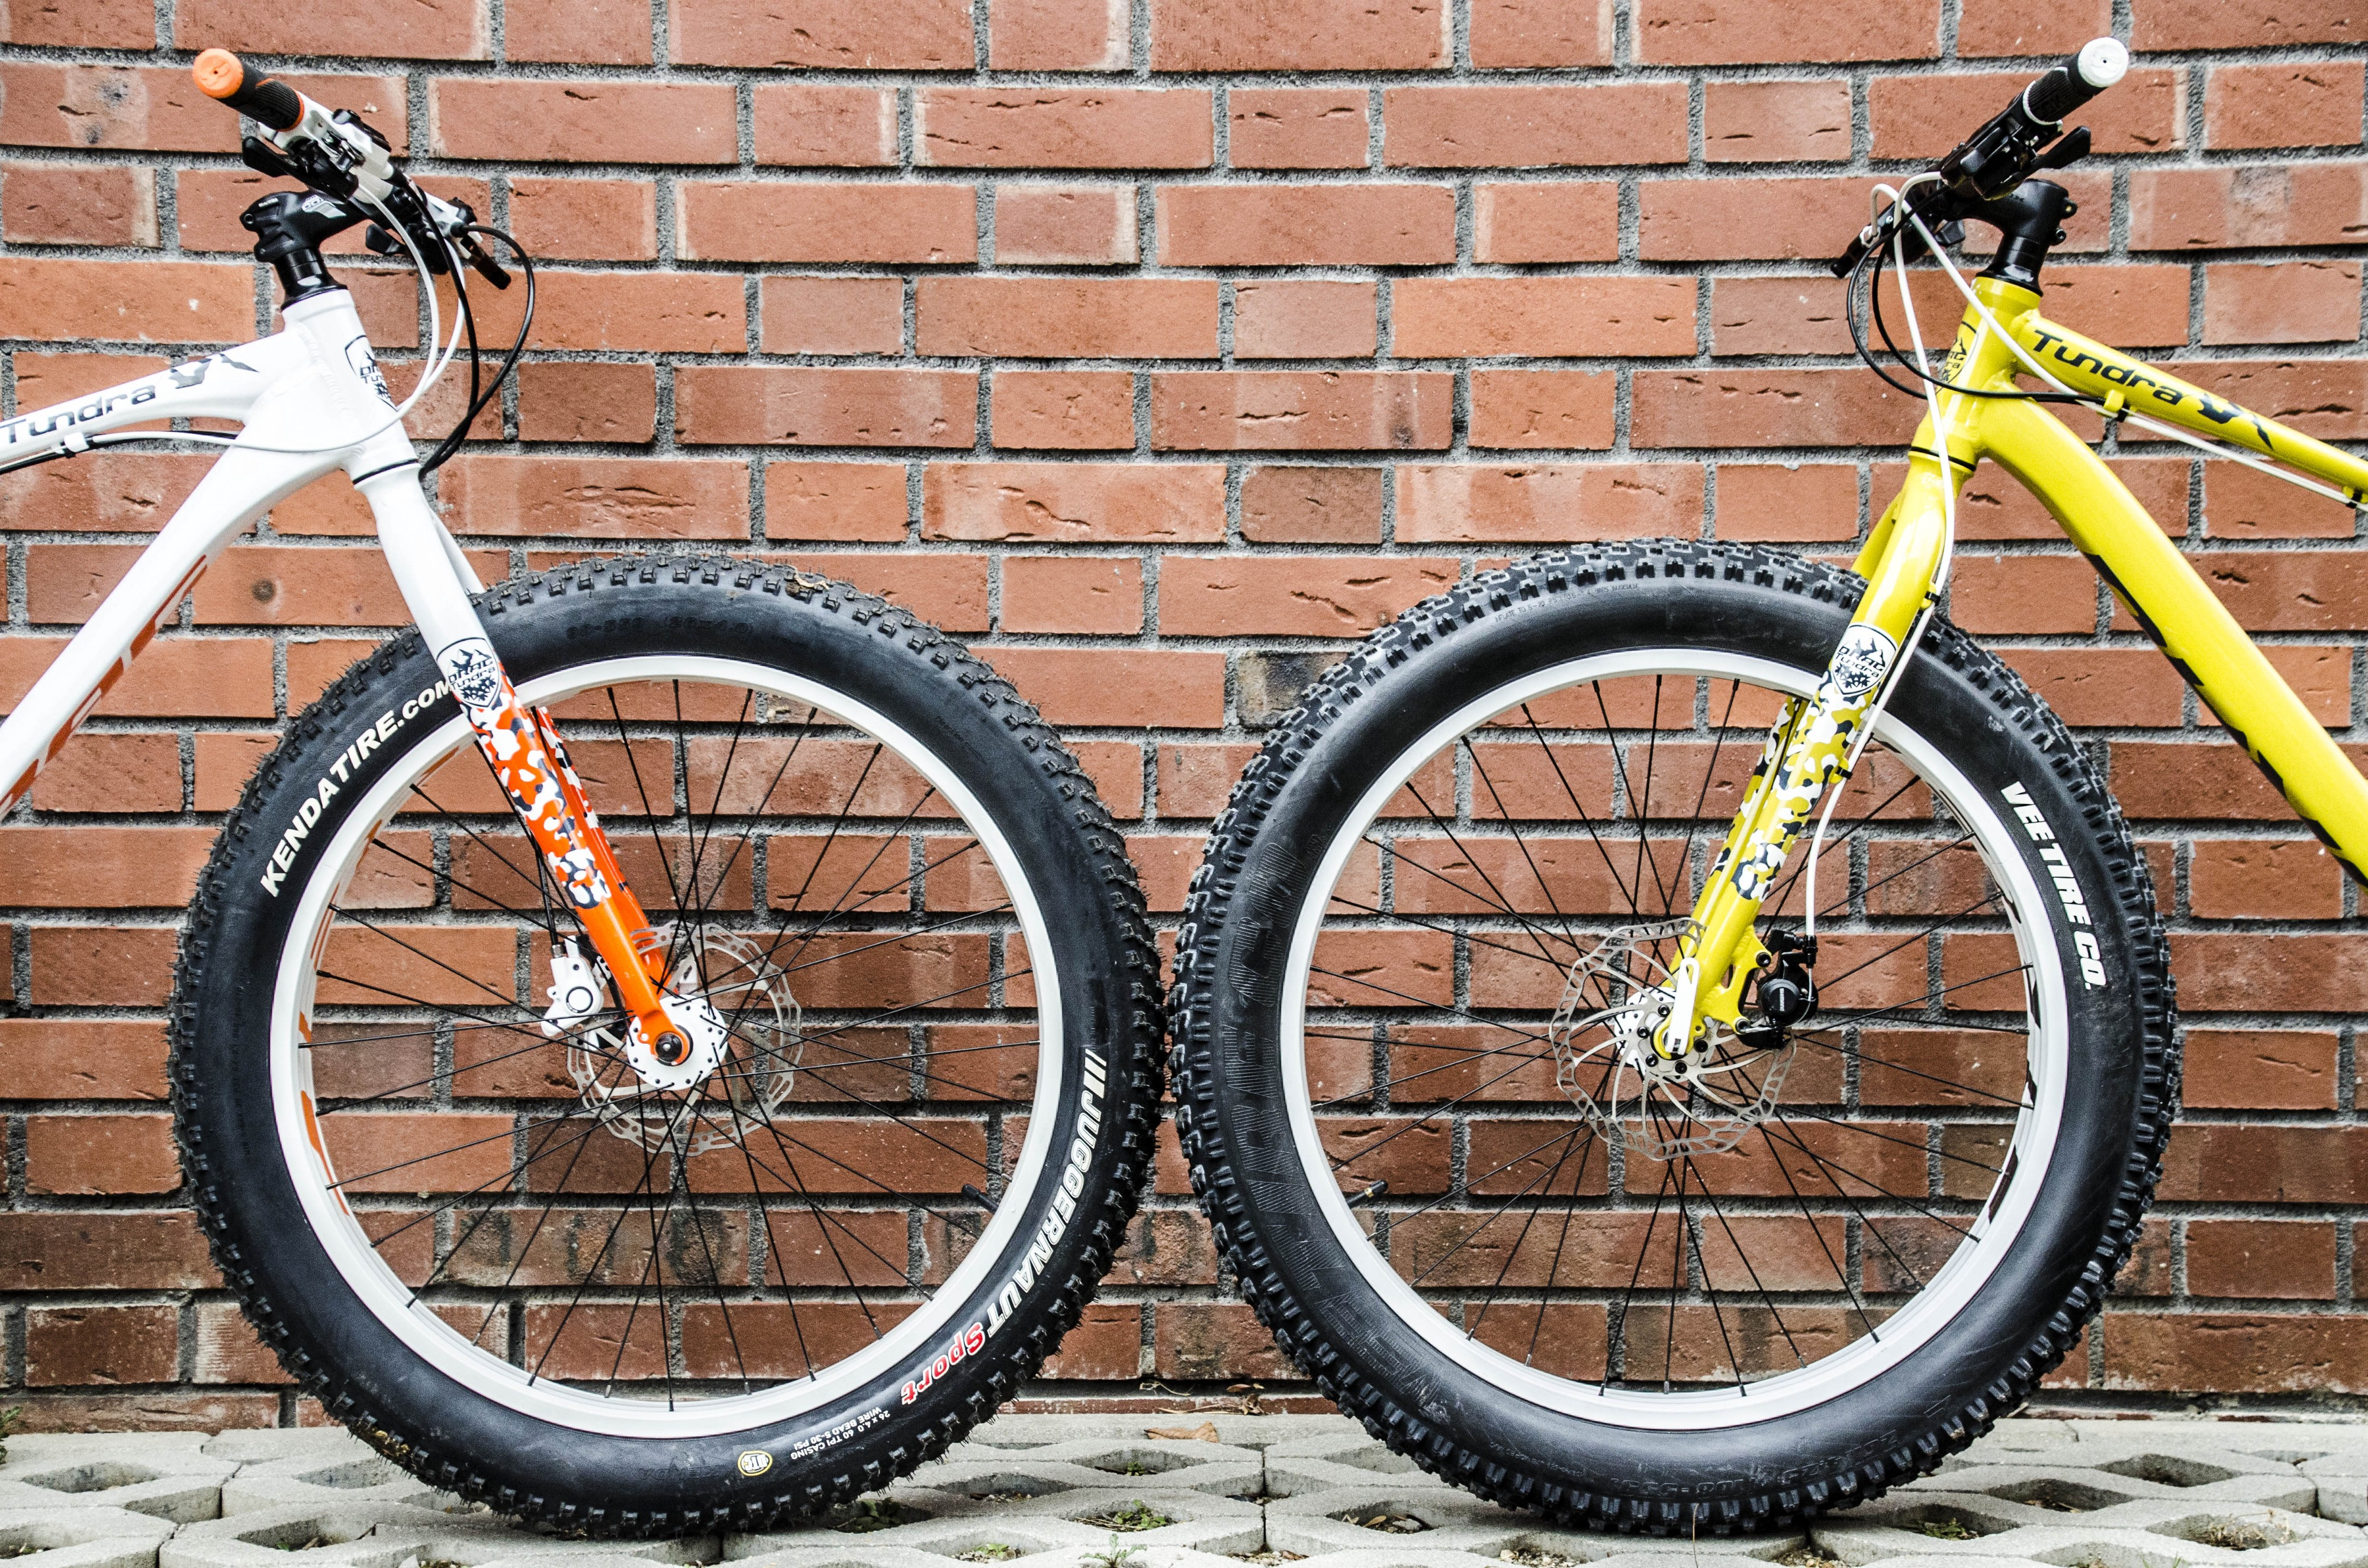 5 learnings about winter bikepacking with fat bikes